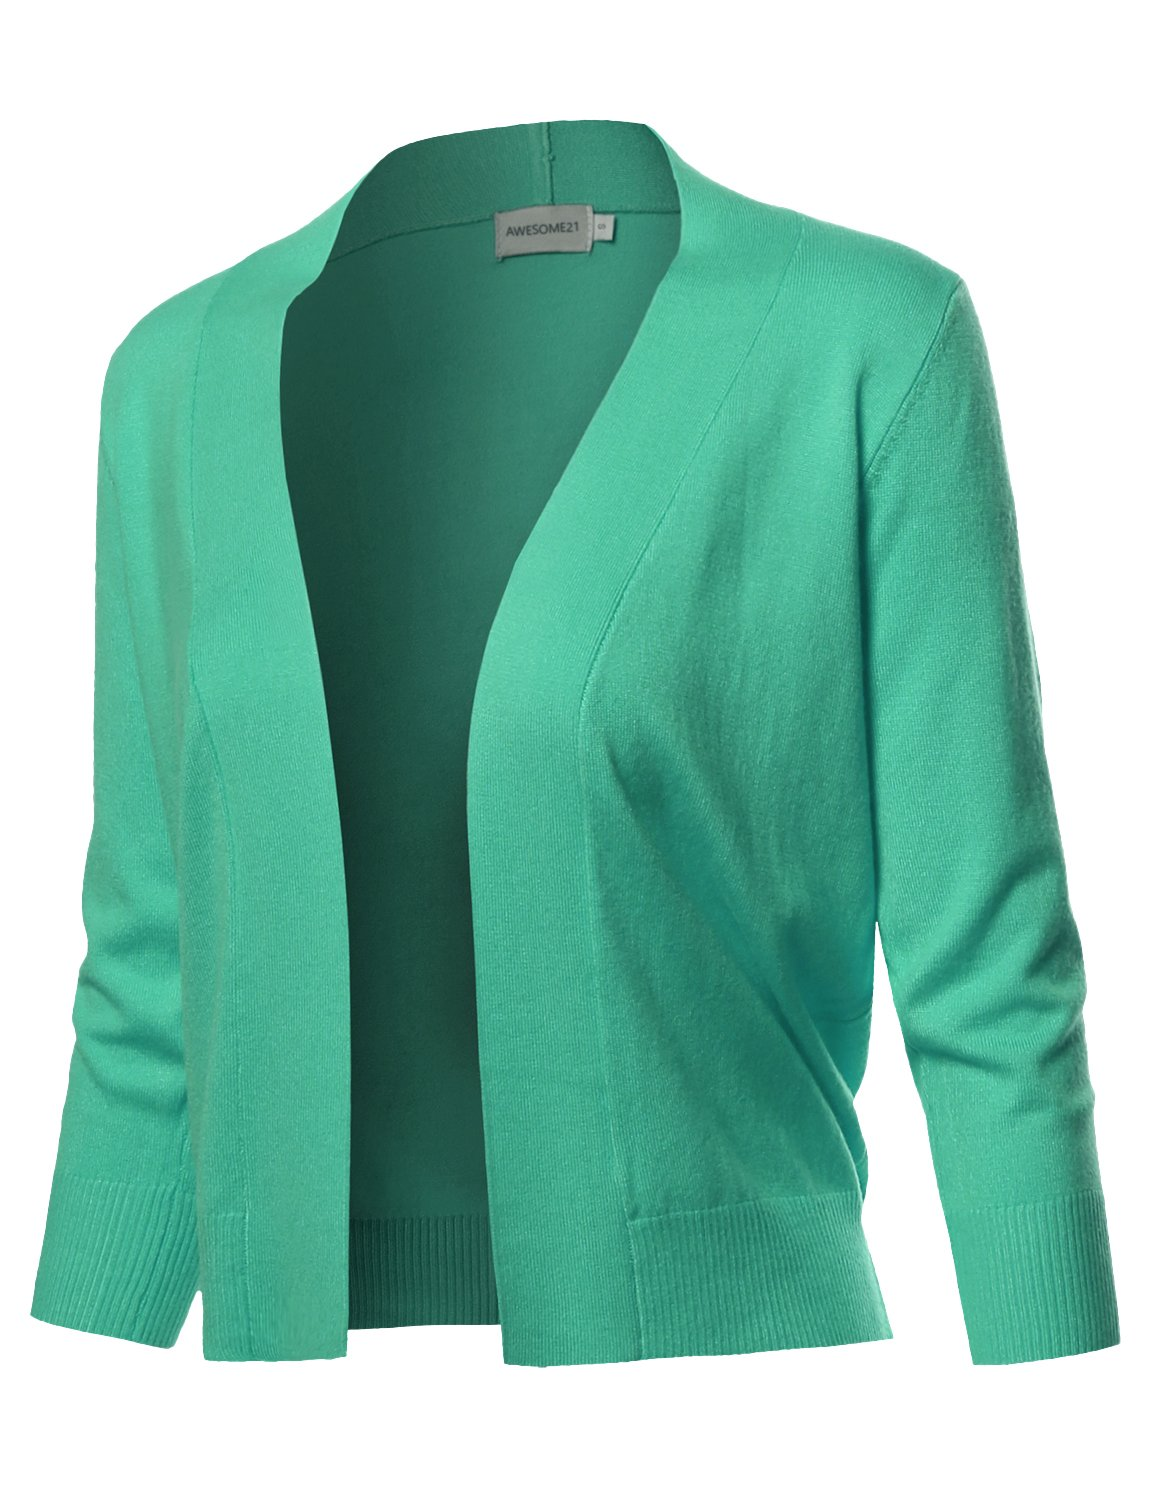 Awesome21 Solid Soft Stretch 3/4 Sleeve Layer Bolero Cardigan Green Size XL